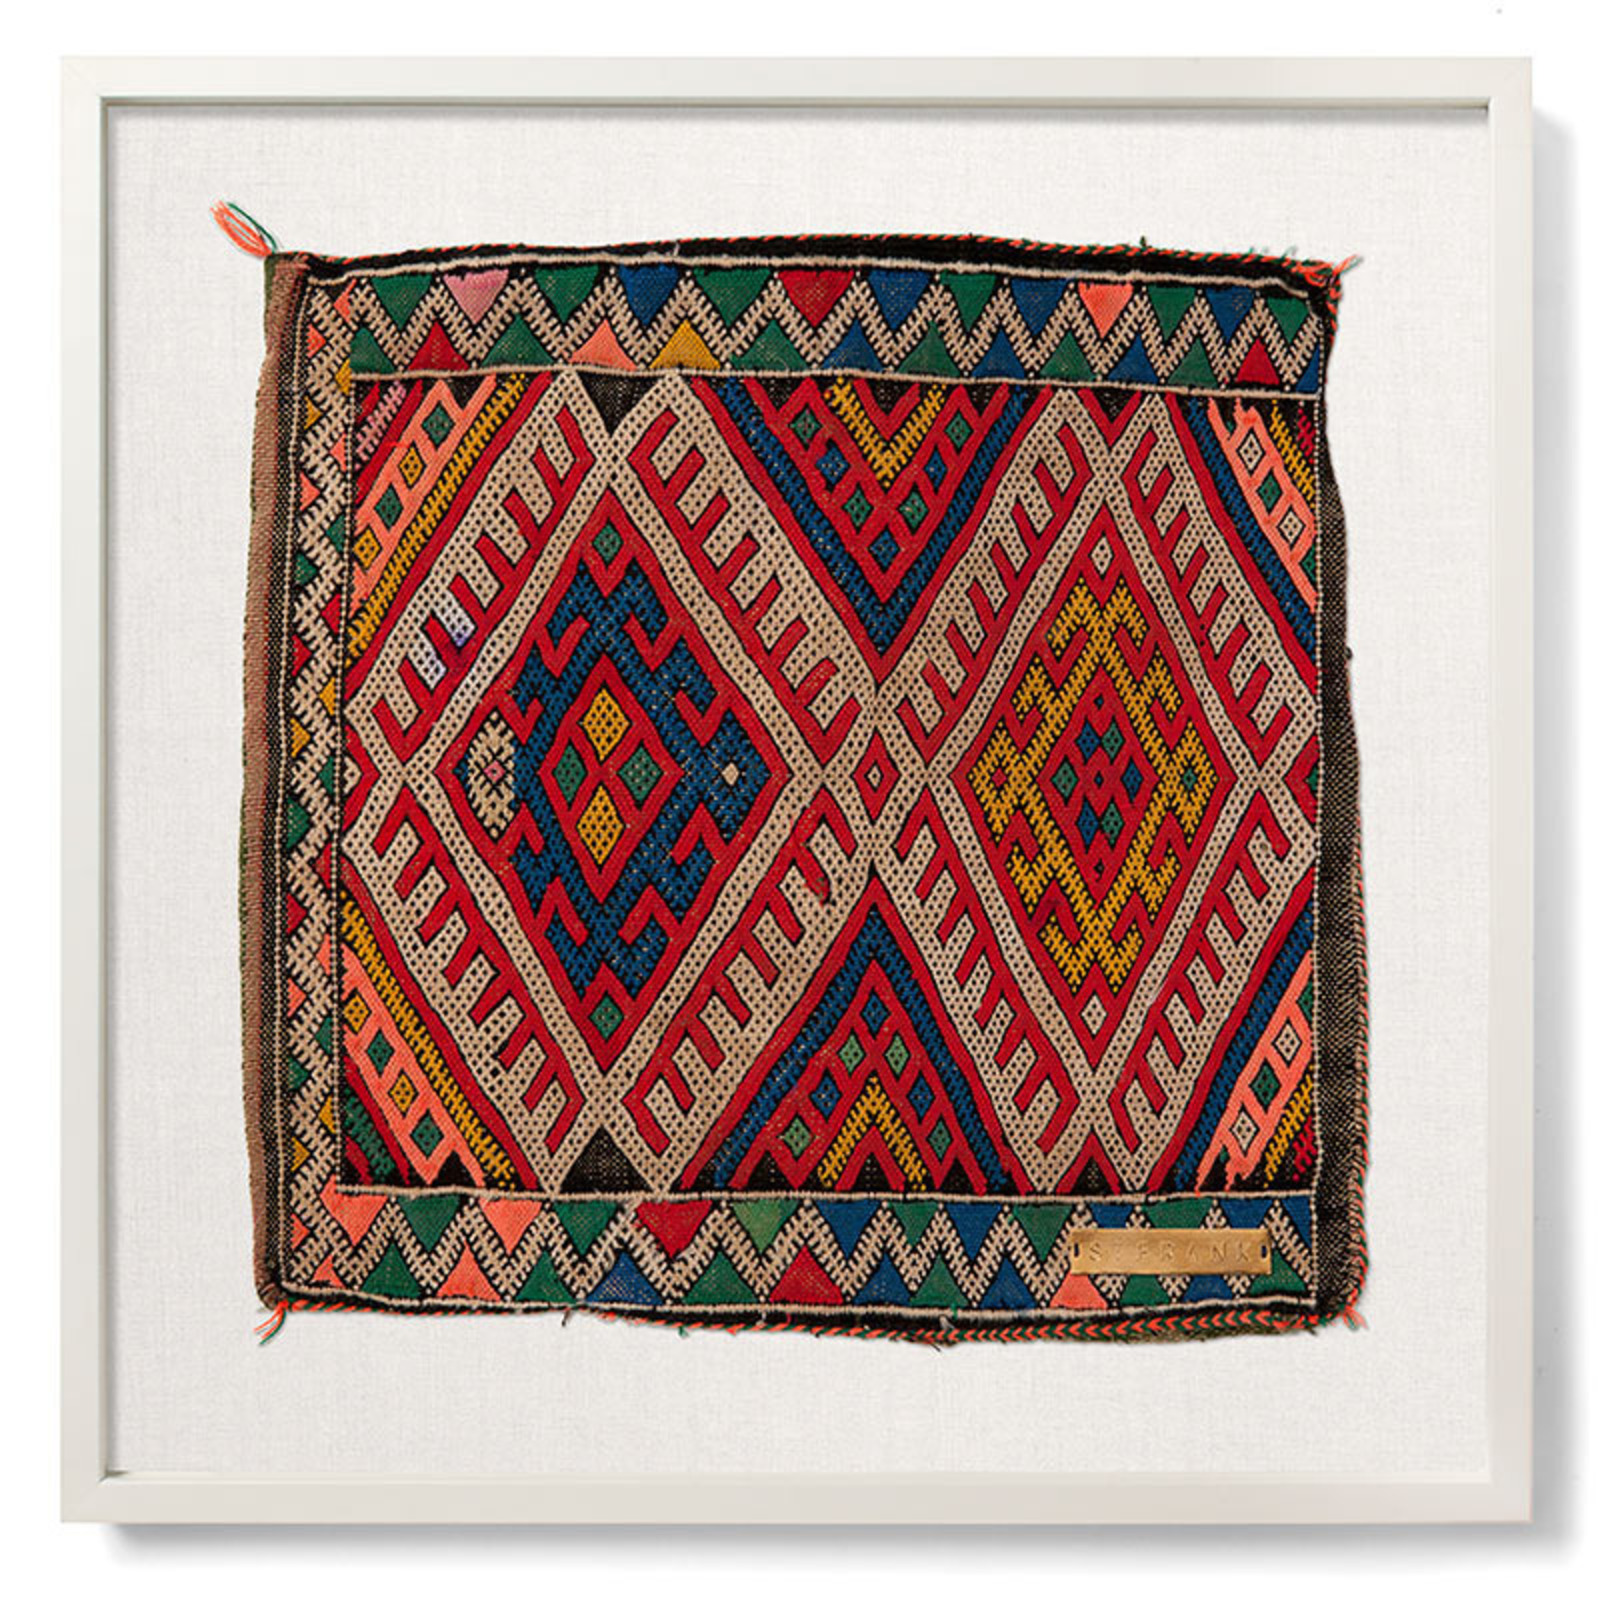 Framed Textile Art From St Frank Cool Hunting